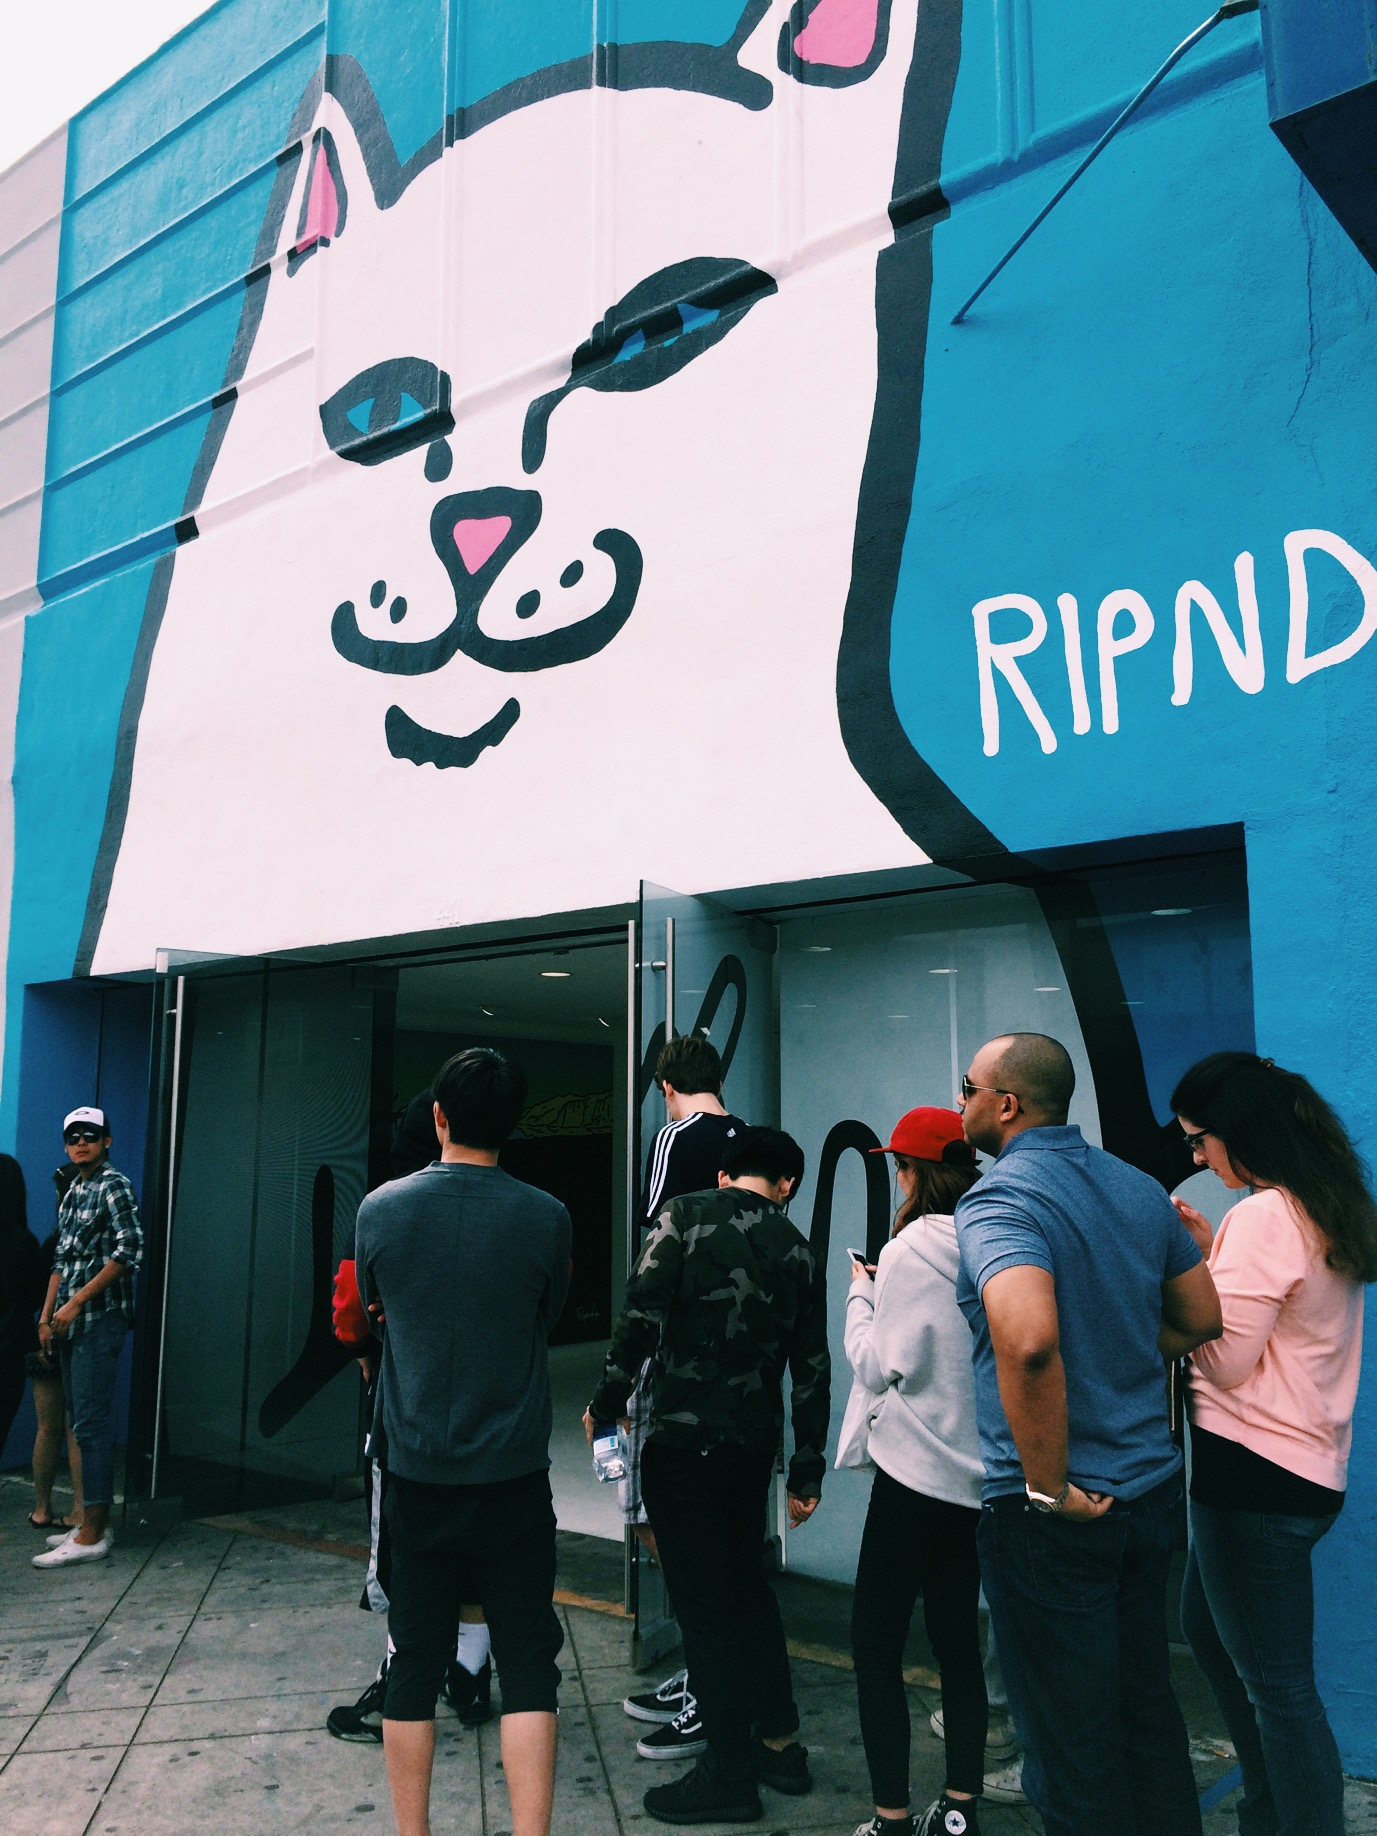 RipnDip was scheduled to be in the Known Gallery for two weeks but due to their success they are holding it down for a whole month. Not to be confused with the people standing in line, they are there for Supreme which is next door.